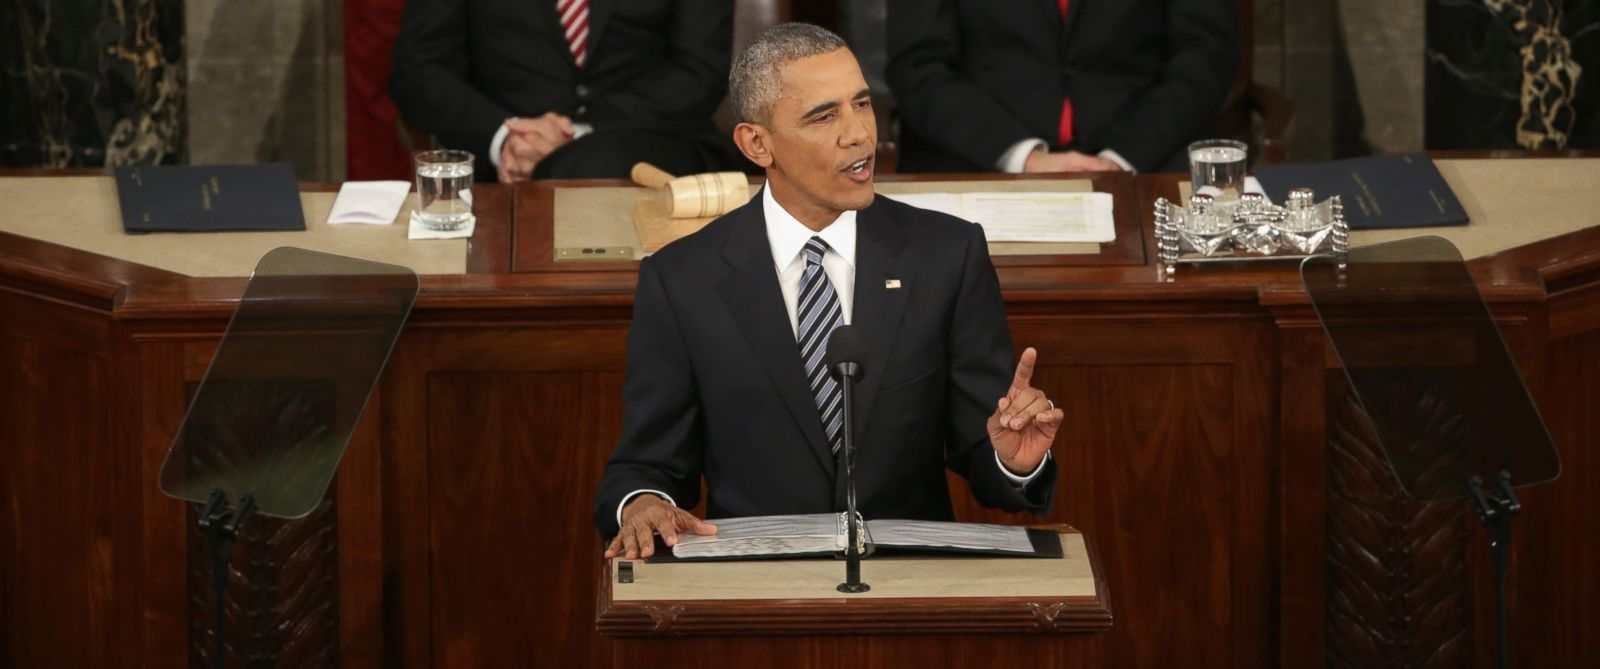 PHOTO: President Barack Obama delivers the State of the Union speech in the House chamber of the Capitol, Jan. 12, 2016 in Washington, DC. Also pictured are Vice President Joe Biden, left, and Speaker of the House Rep. Paul Ryan.